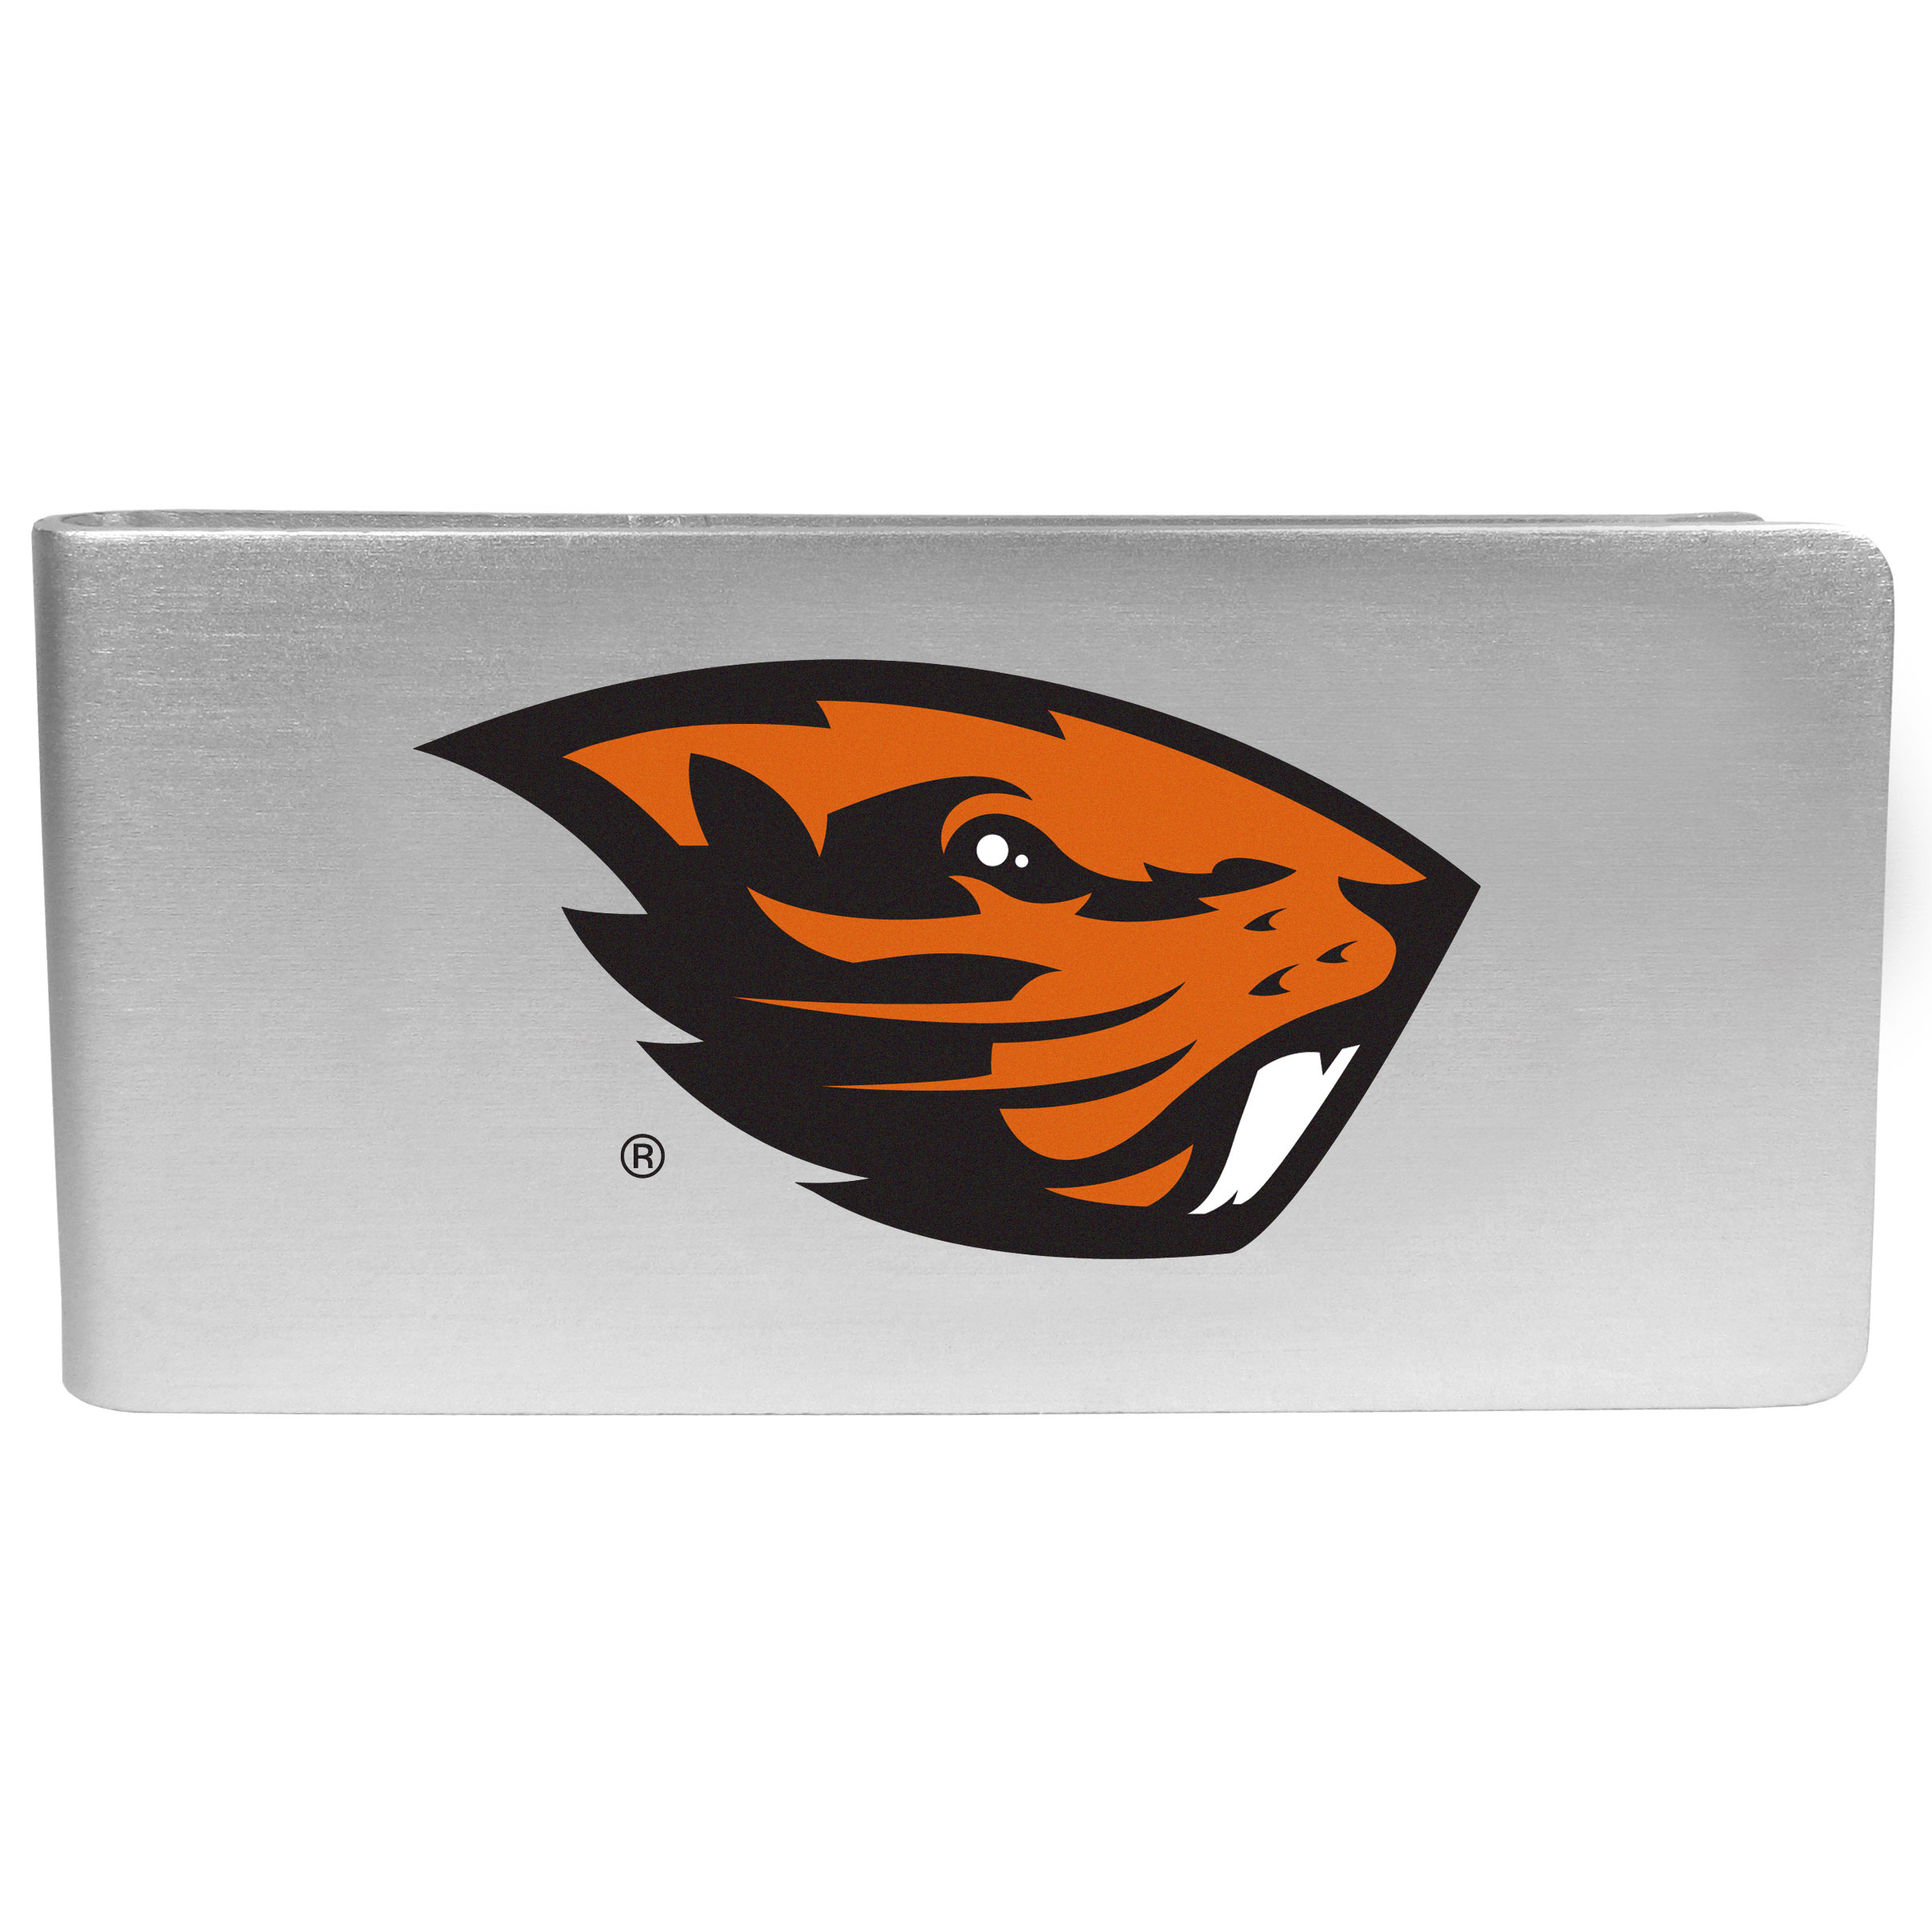 Oregon St. Beavers Logo Money Clip - Our brushed metal money clip has classic style and functionality. The attractive clip features the Oregon St. Beavers logo expertly printed on front.